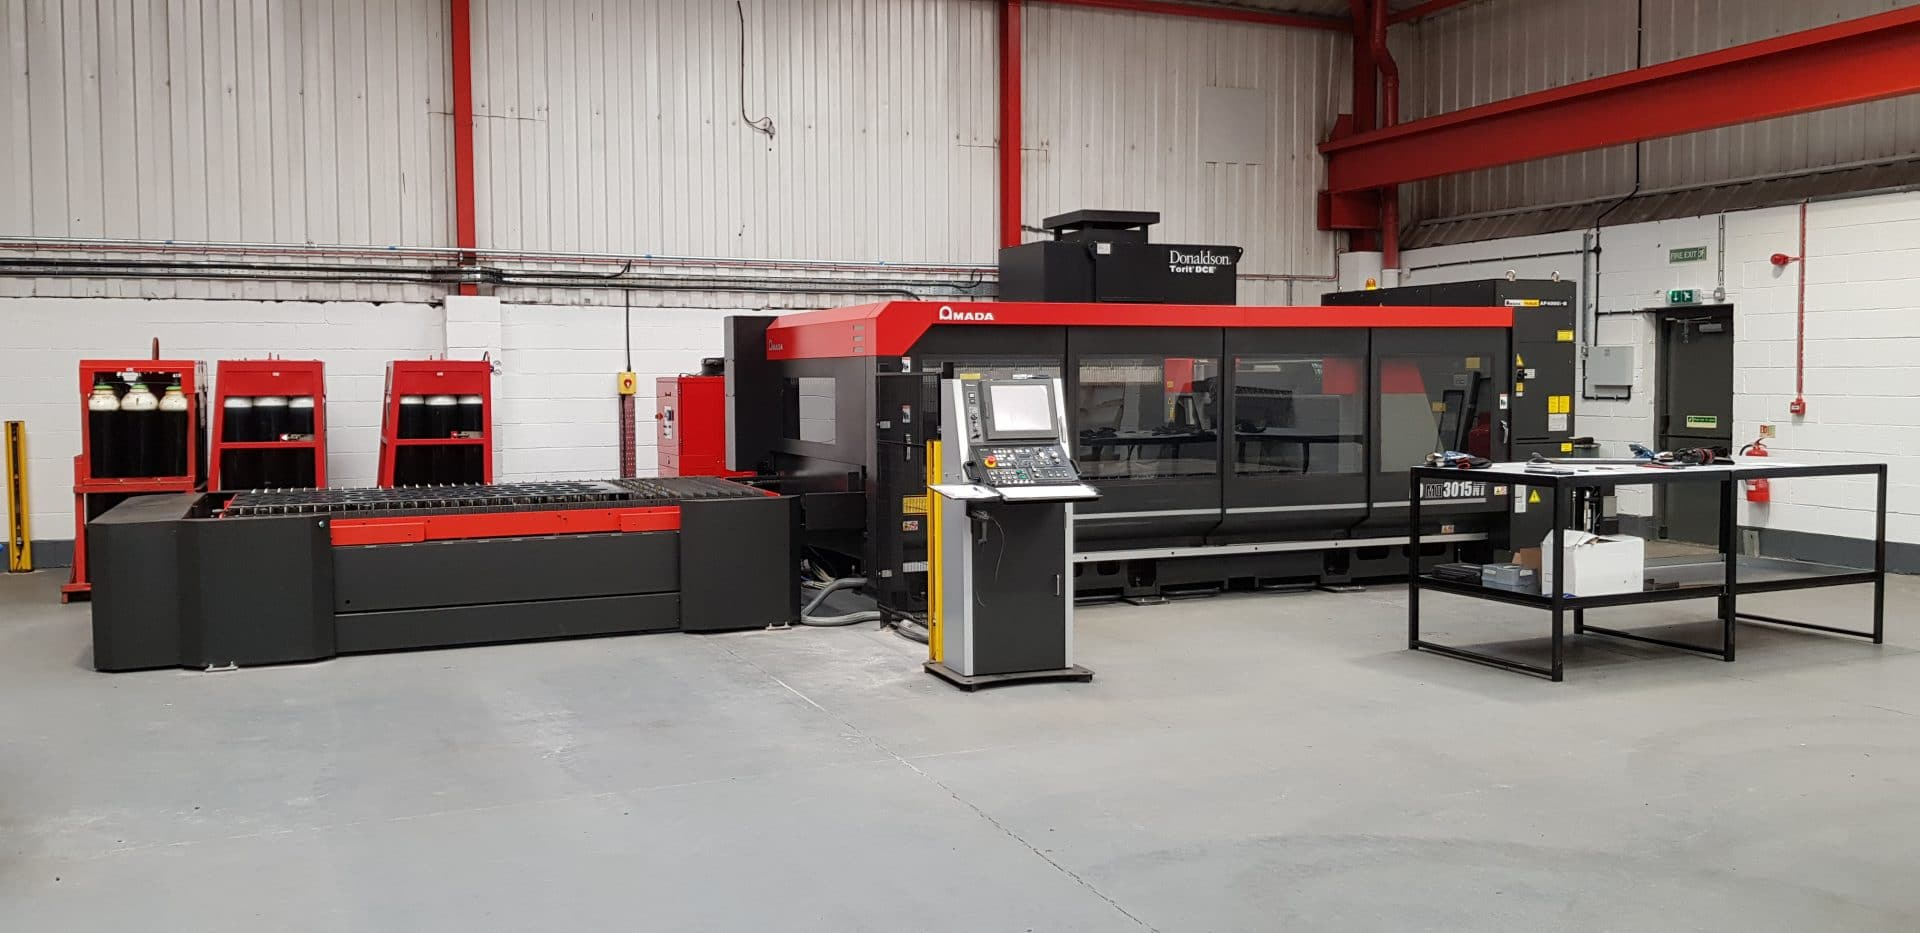 Amada - New Laser Cutting Machine